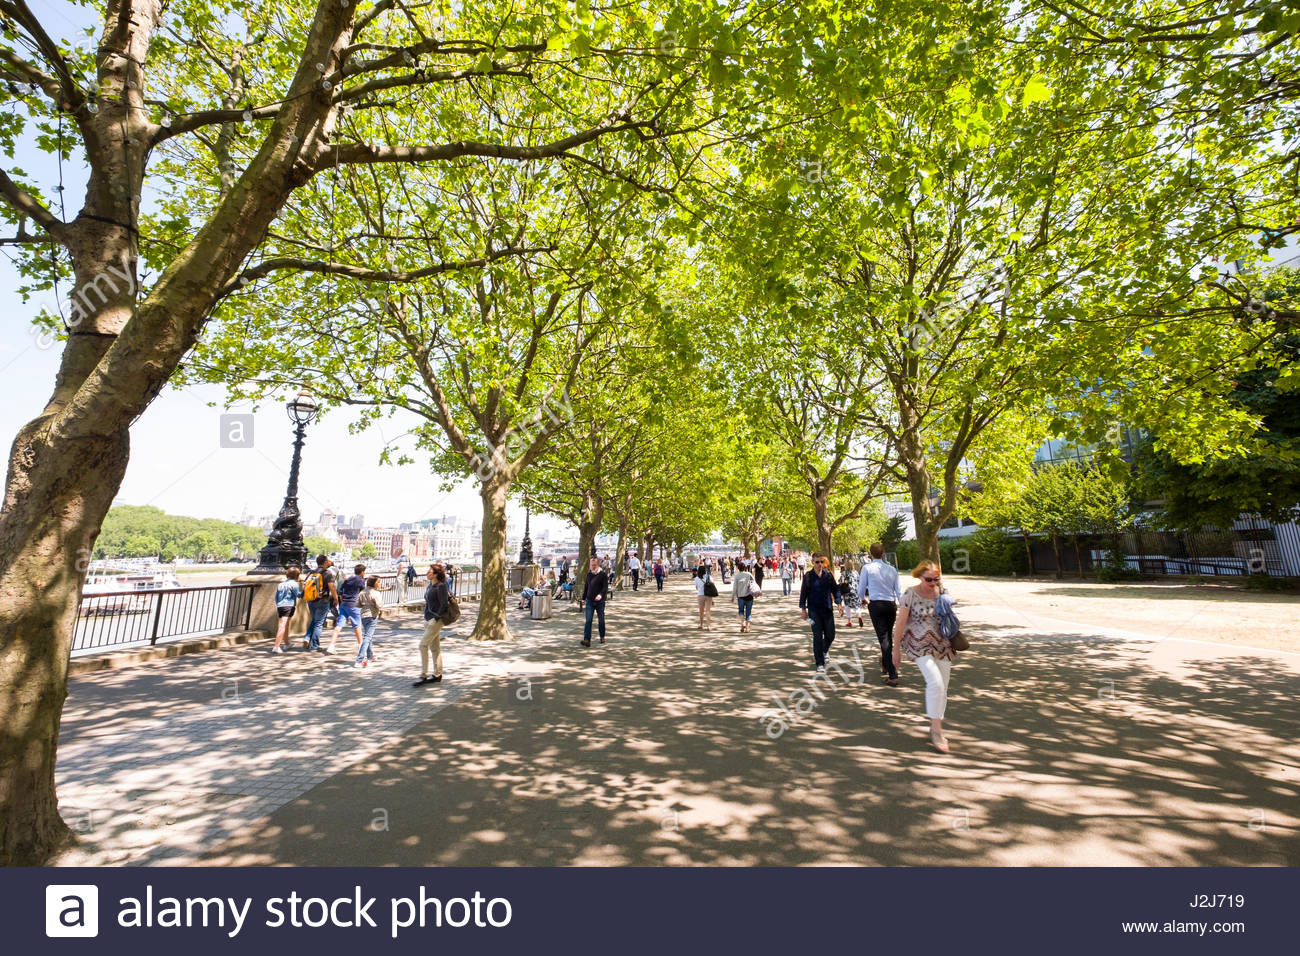 London Plane Trees providing shade to people walking on the